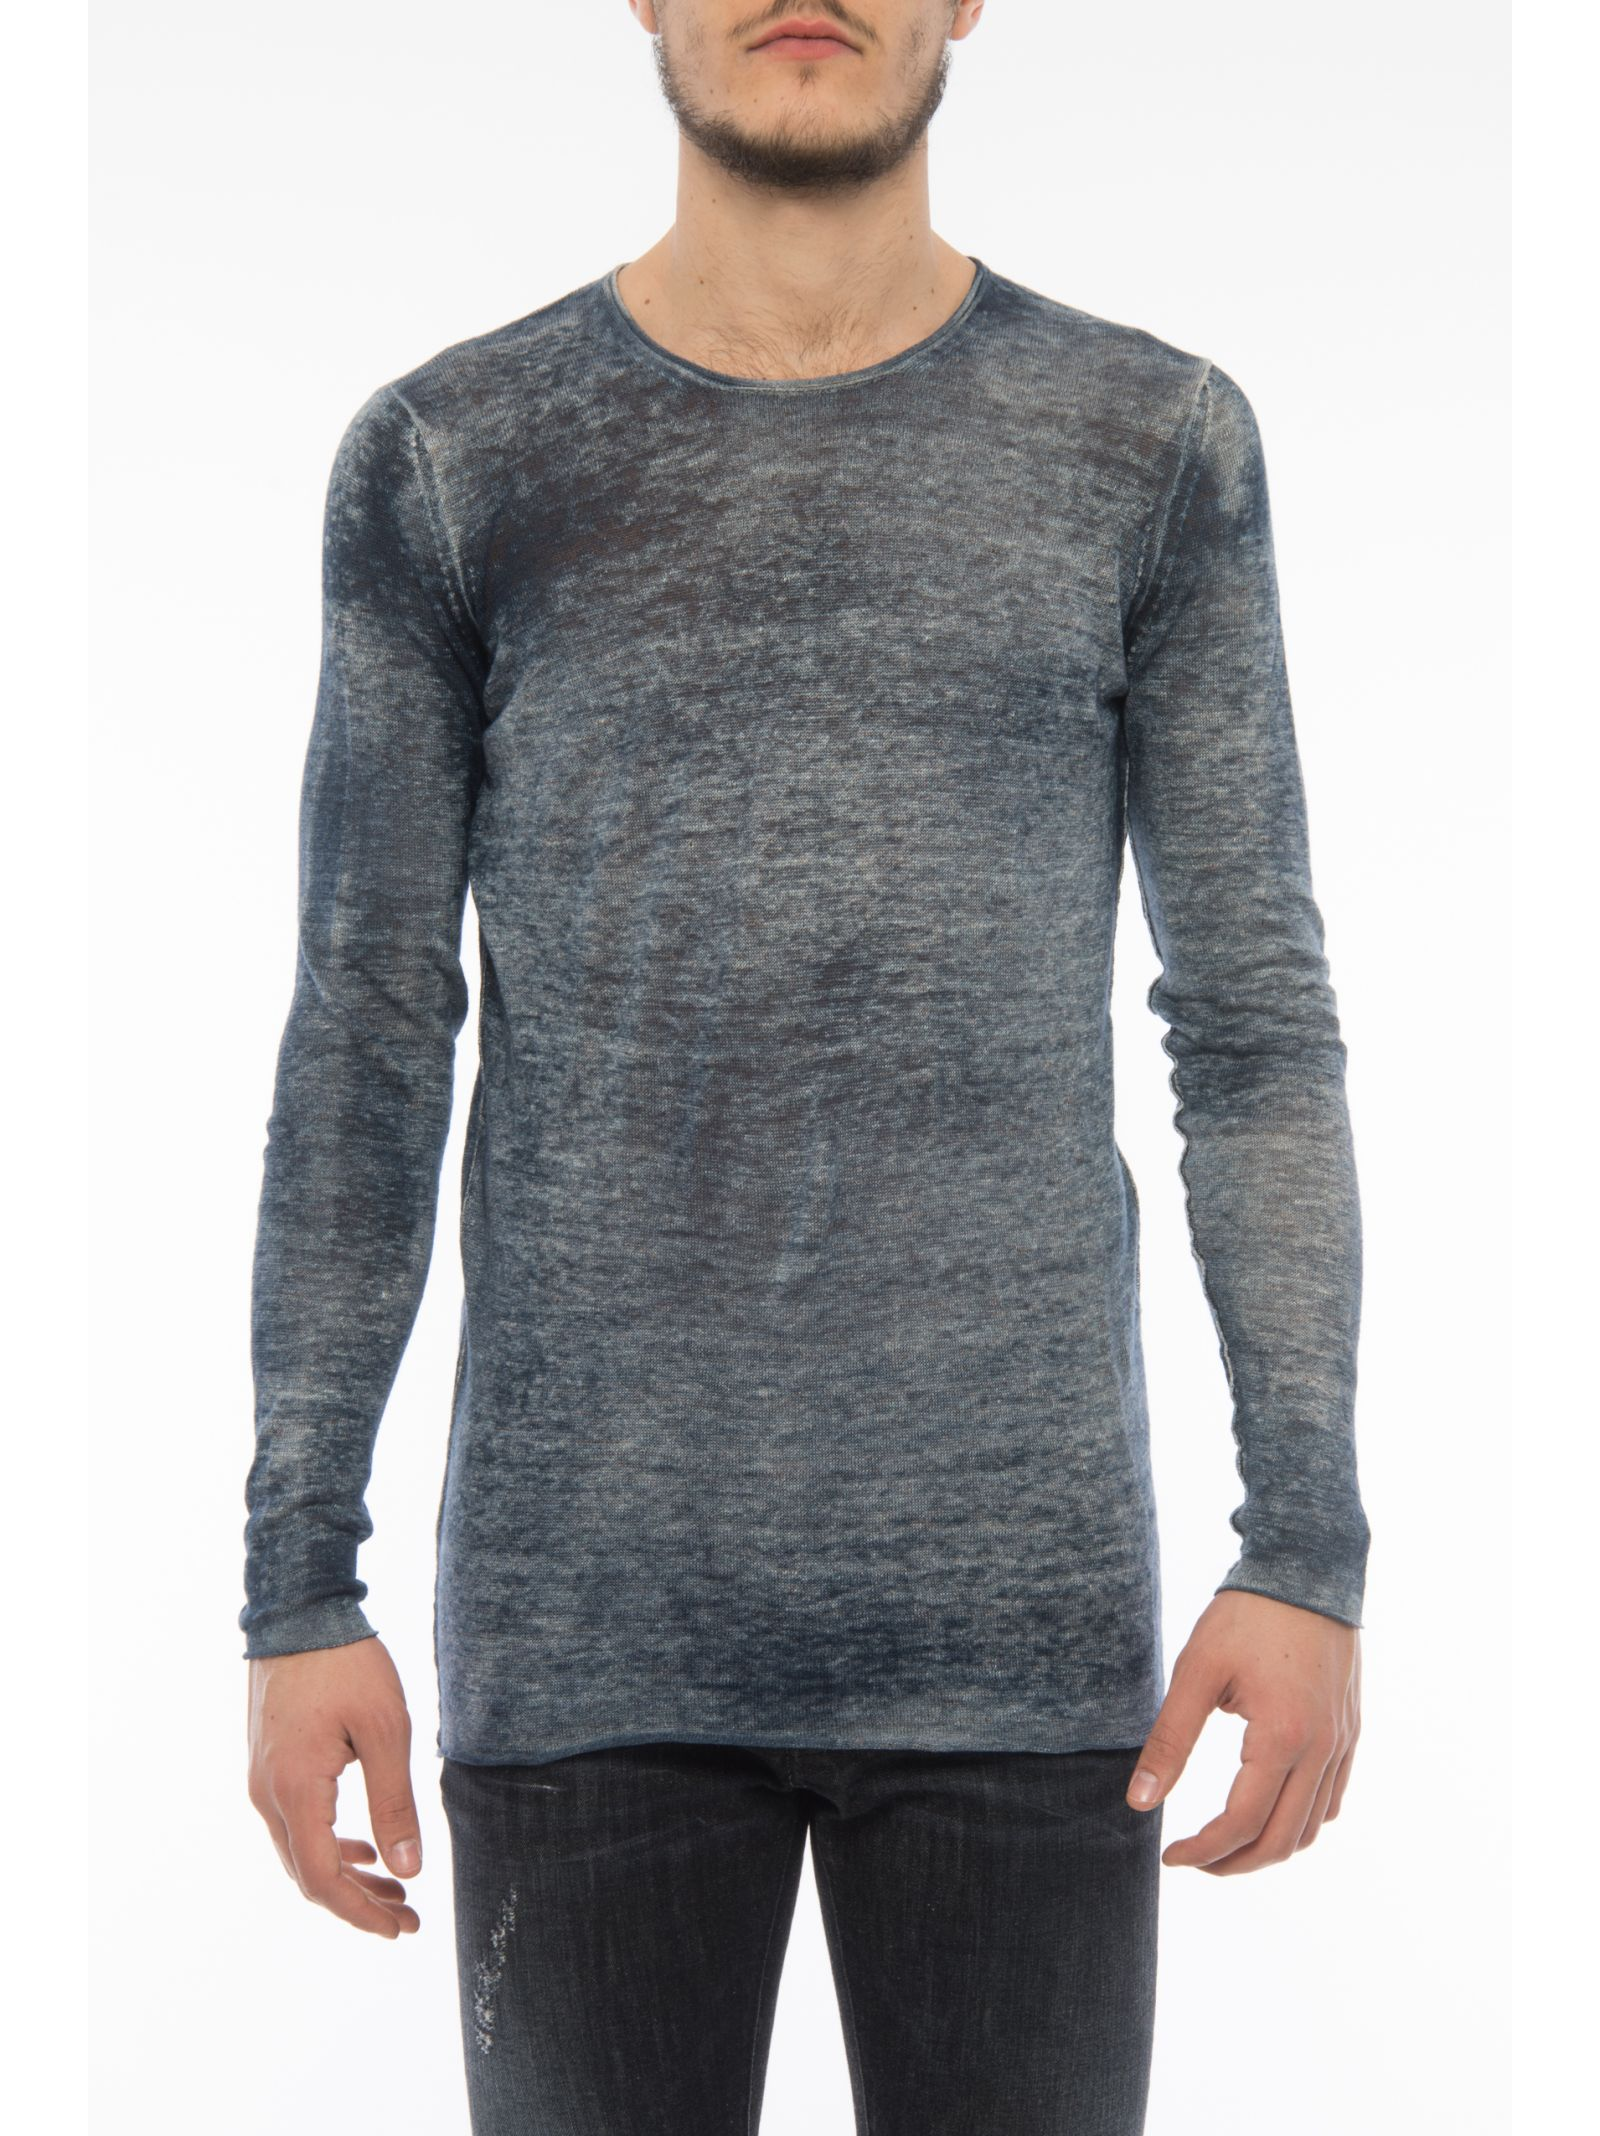 Crew Neck Pullover With Curled Hems